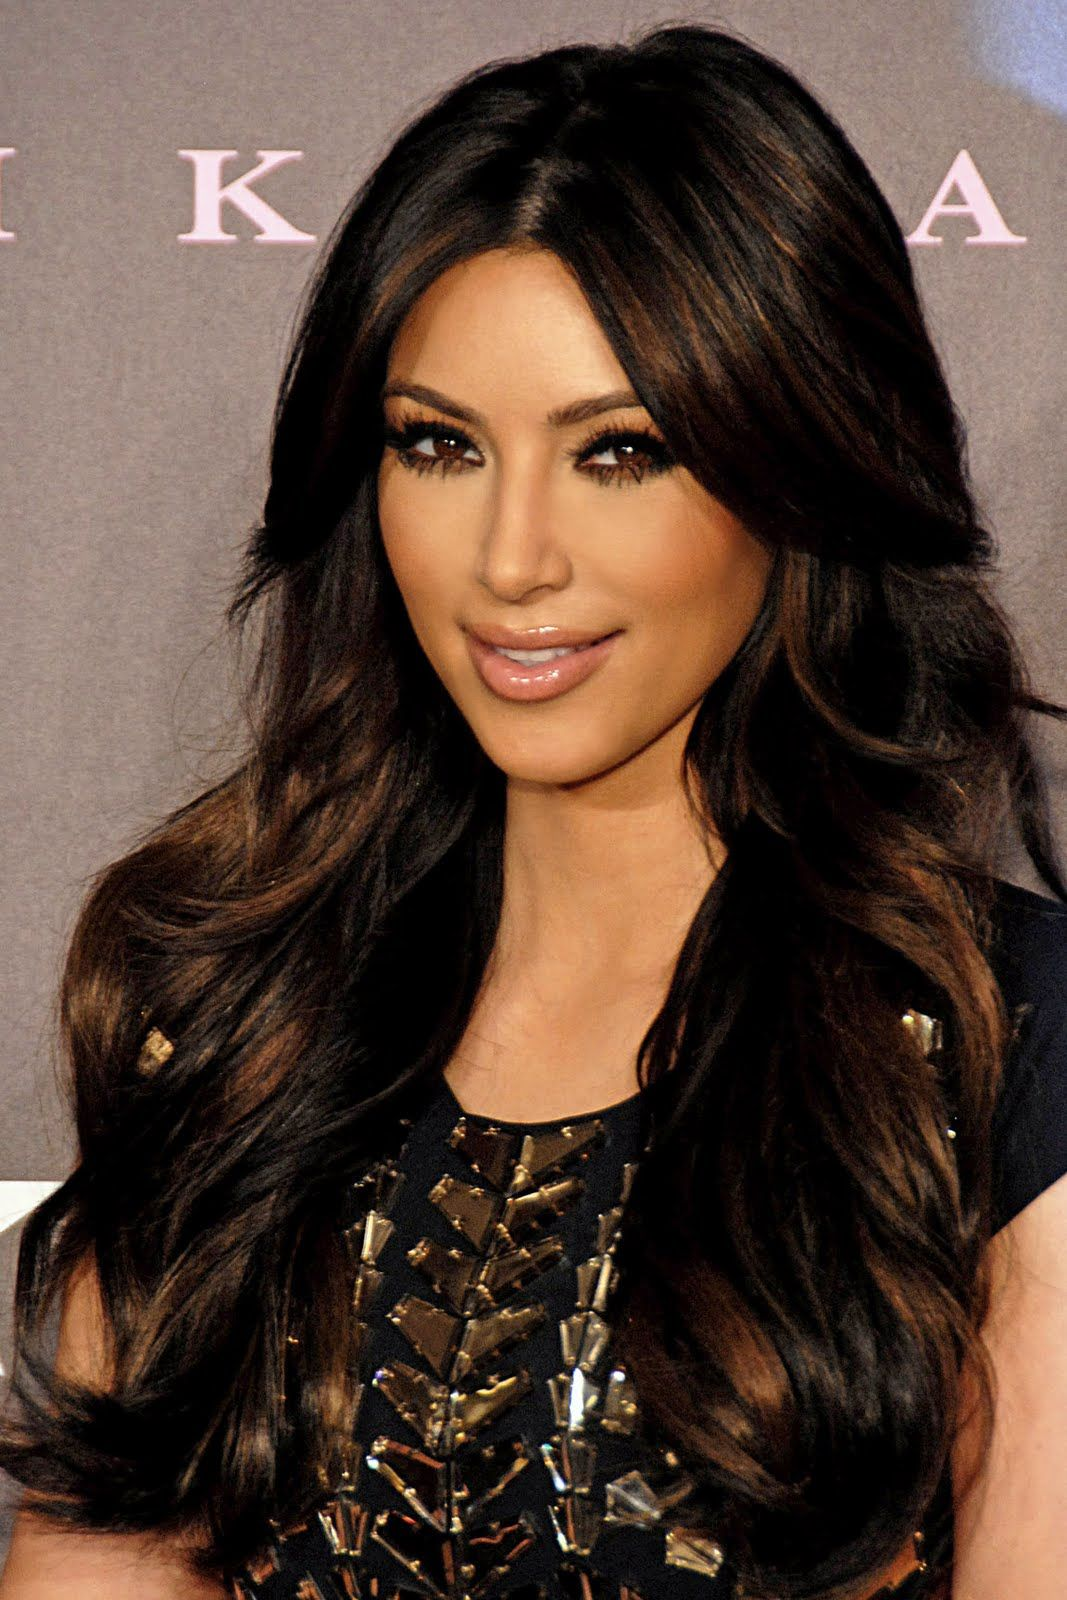 50 best ombre hair color ideas herinterest - Love The Color This Might Be My Next Hair Project Maybe